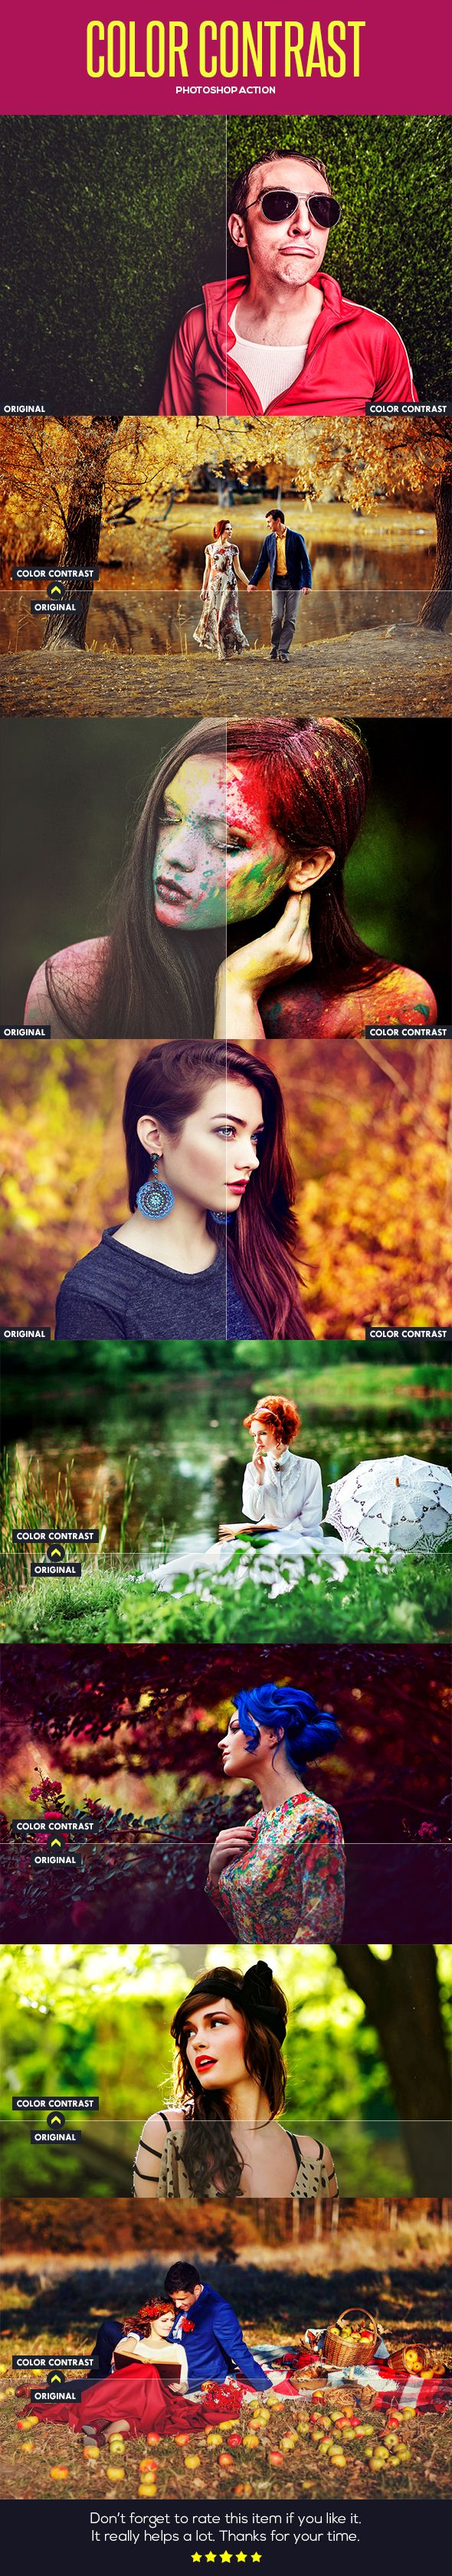 Color Contrast Photo Effects